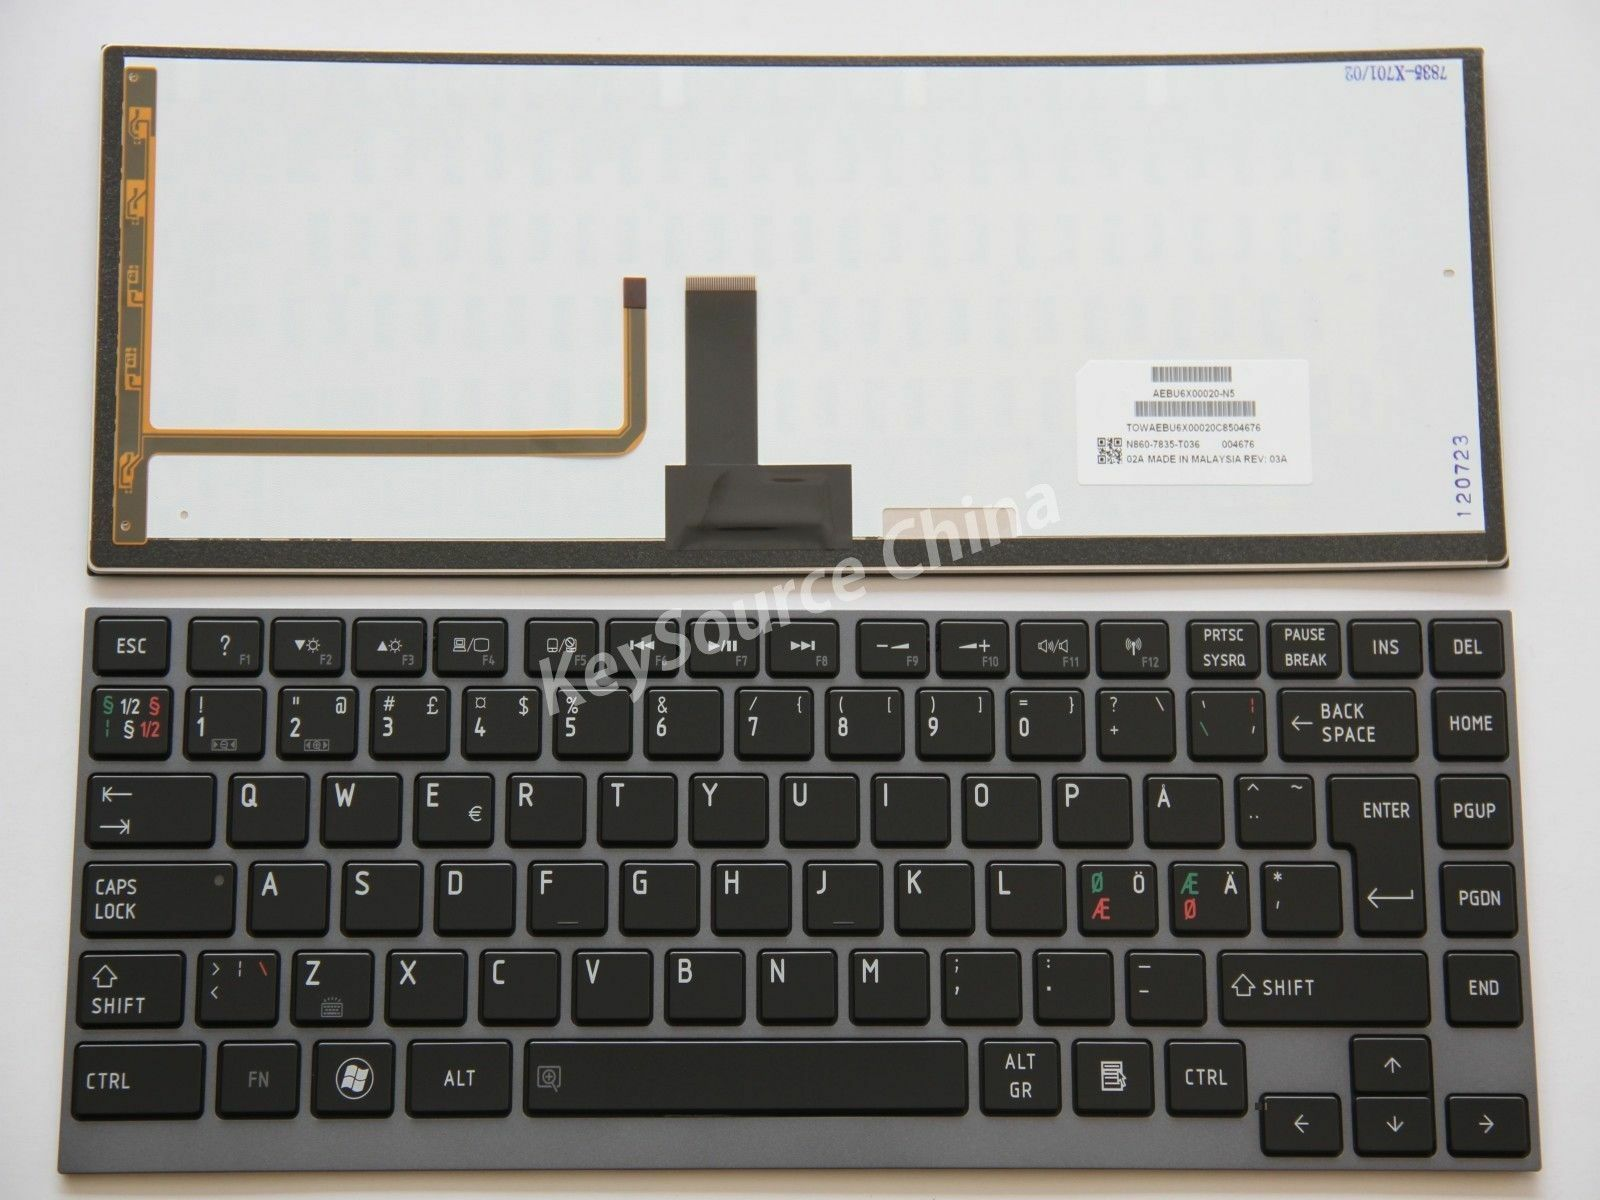 NEW Toshiba Satellite U800 U840 U845 U900 U920 U925 U940 U945 Keyboard Spanish